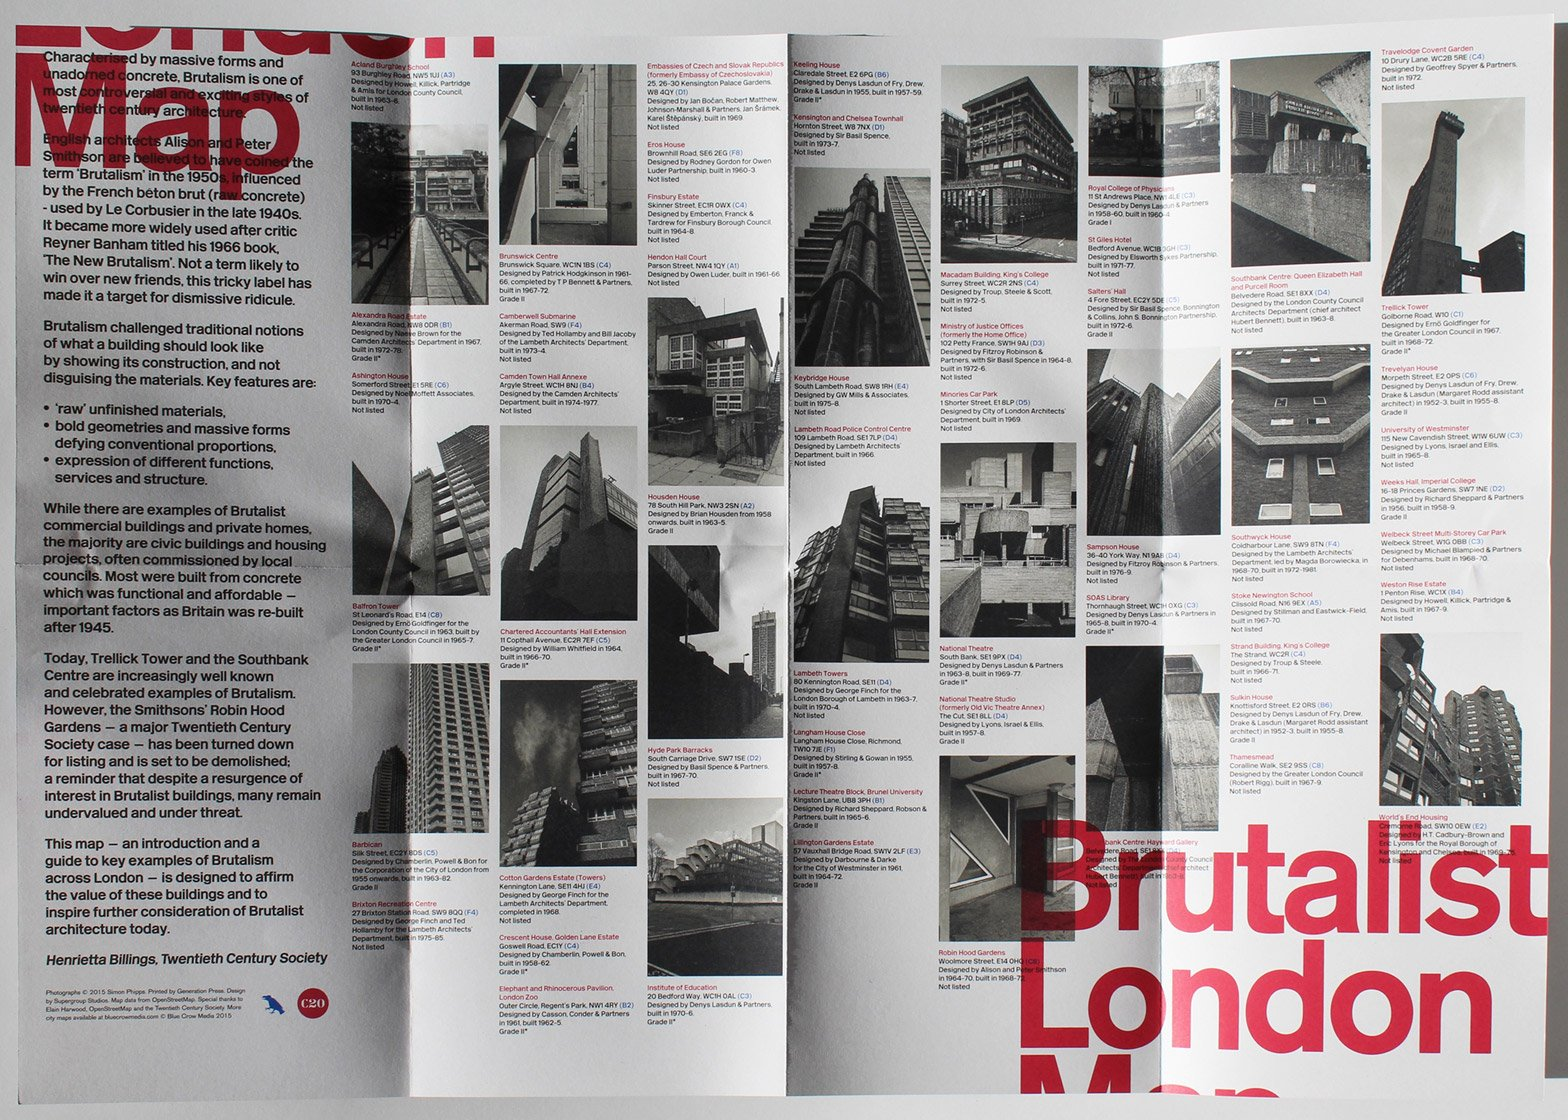 Brutalist London Map by Twentieth Century Society